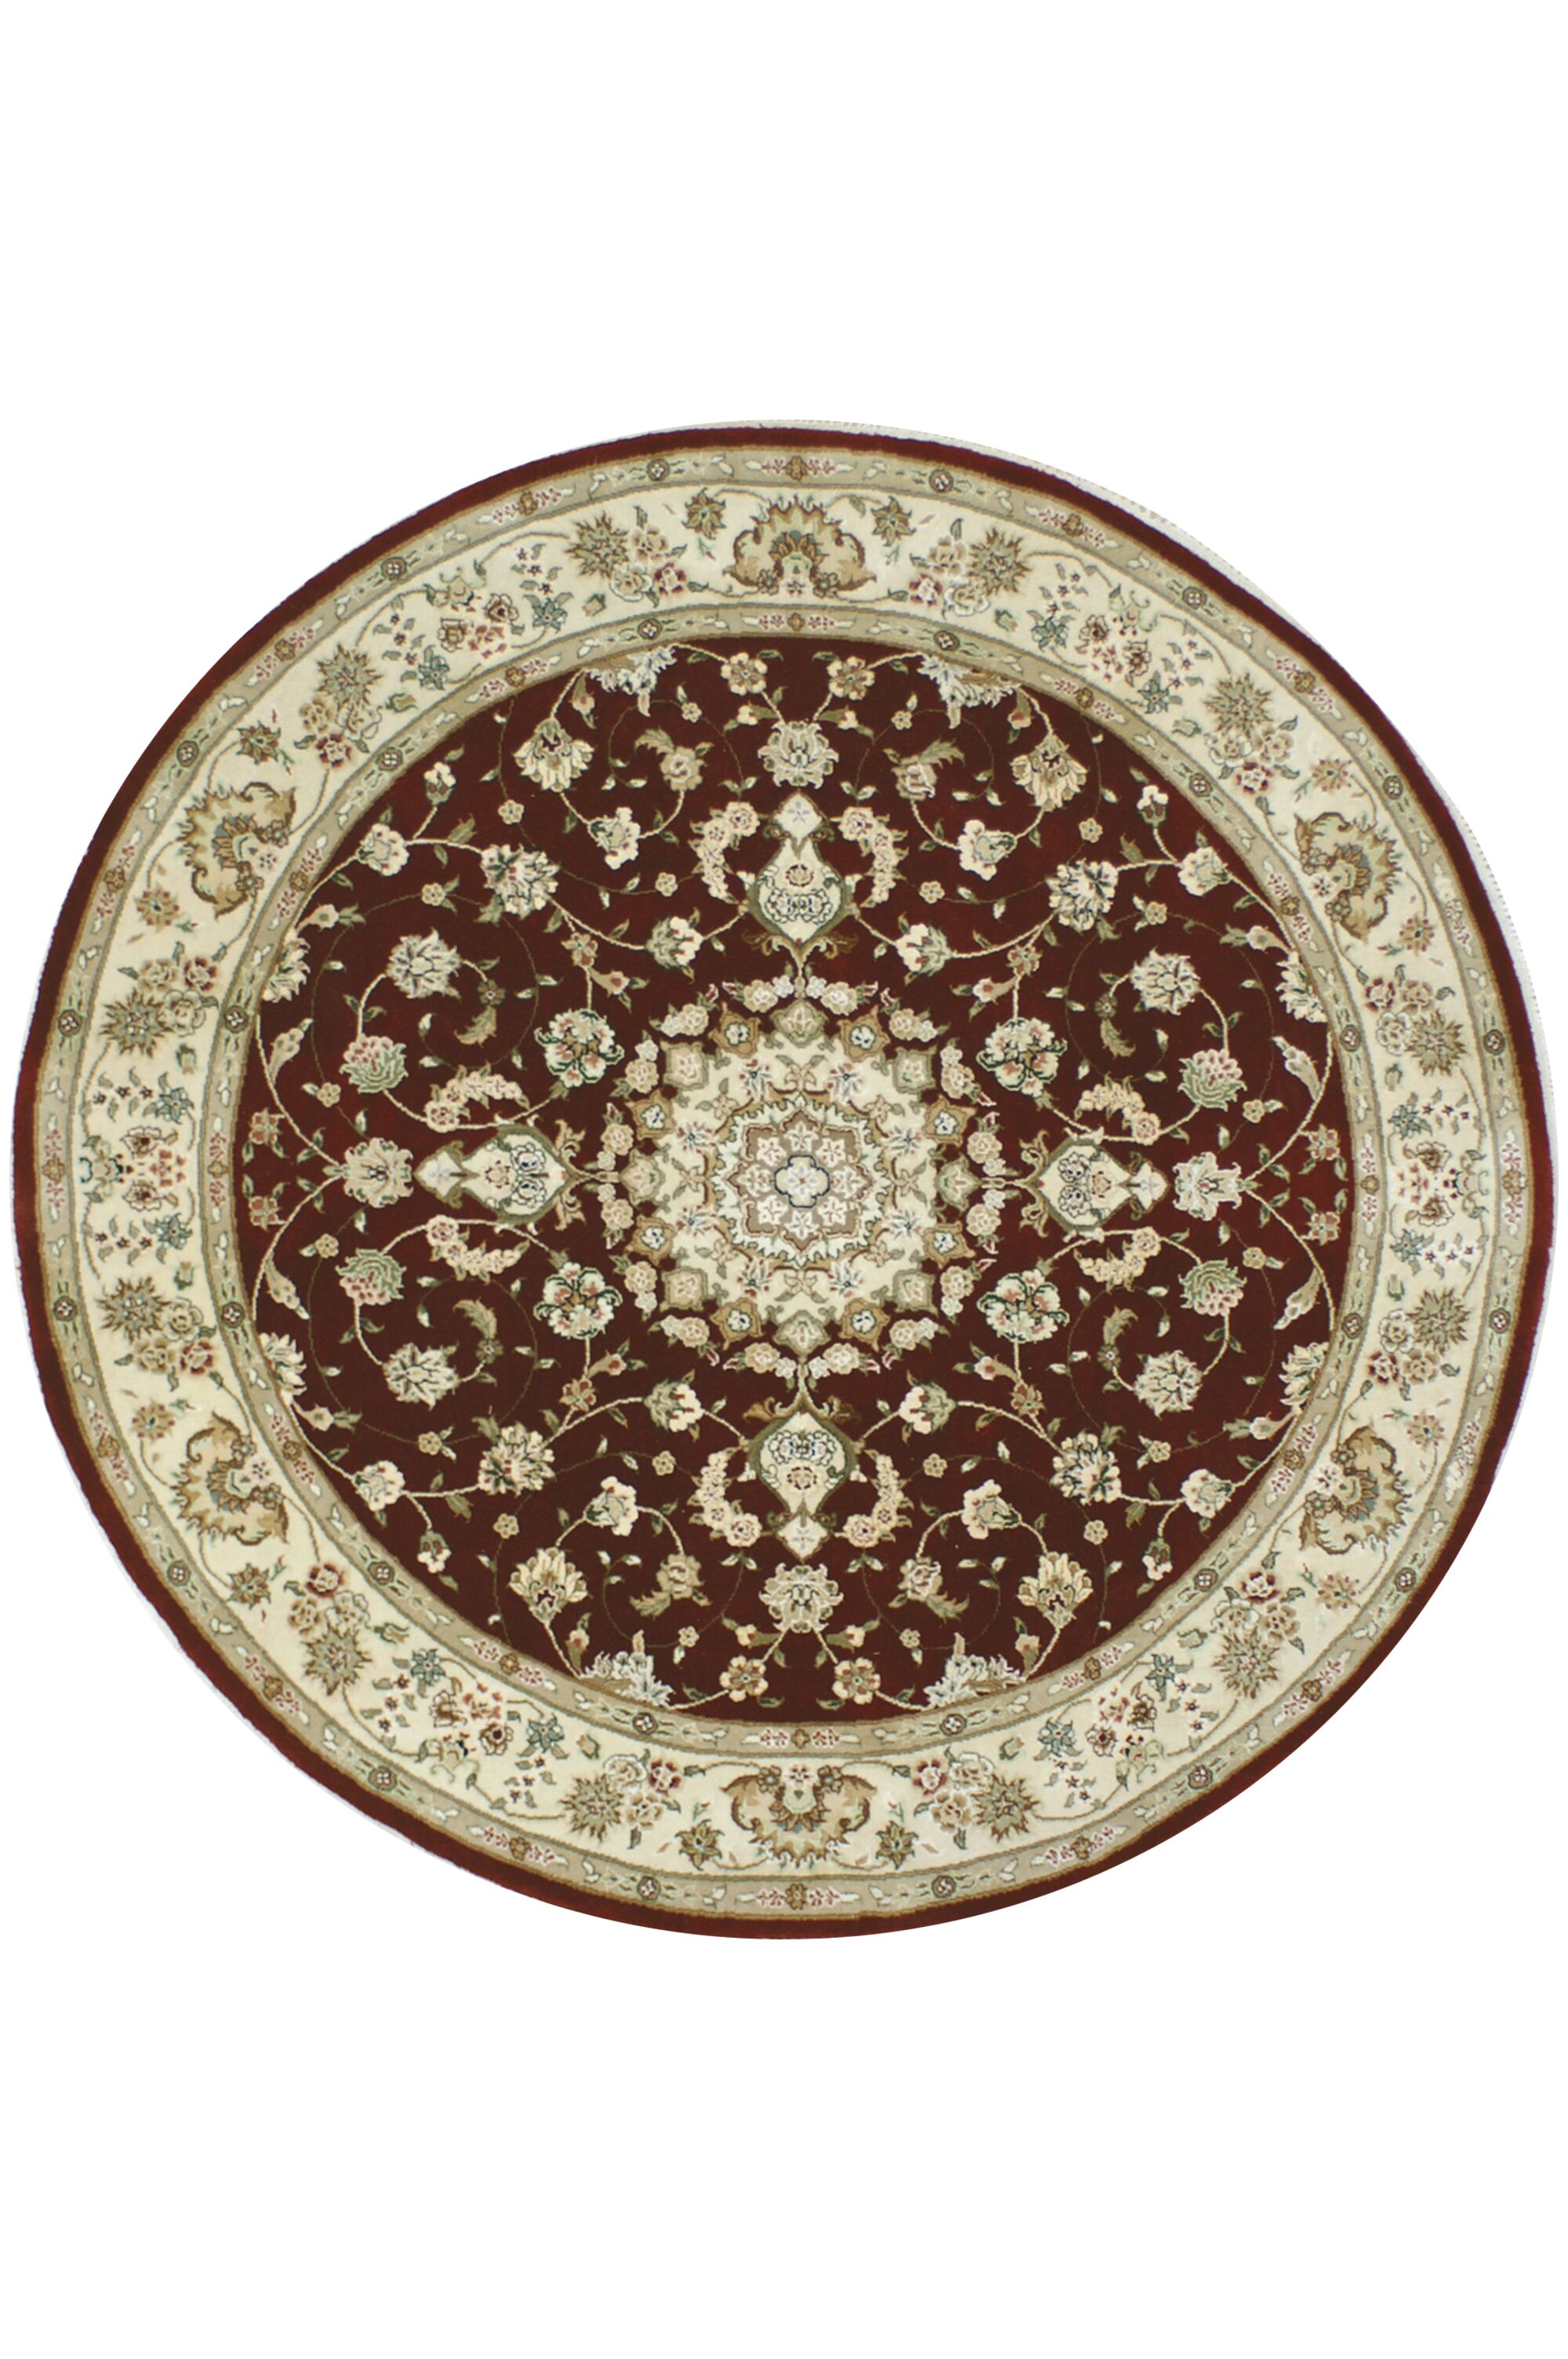 Hand-Tufted Burgundy/Red Area Rug Rug Size: Round 5'6